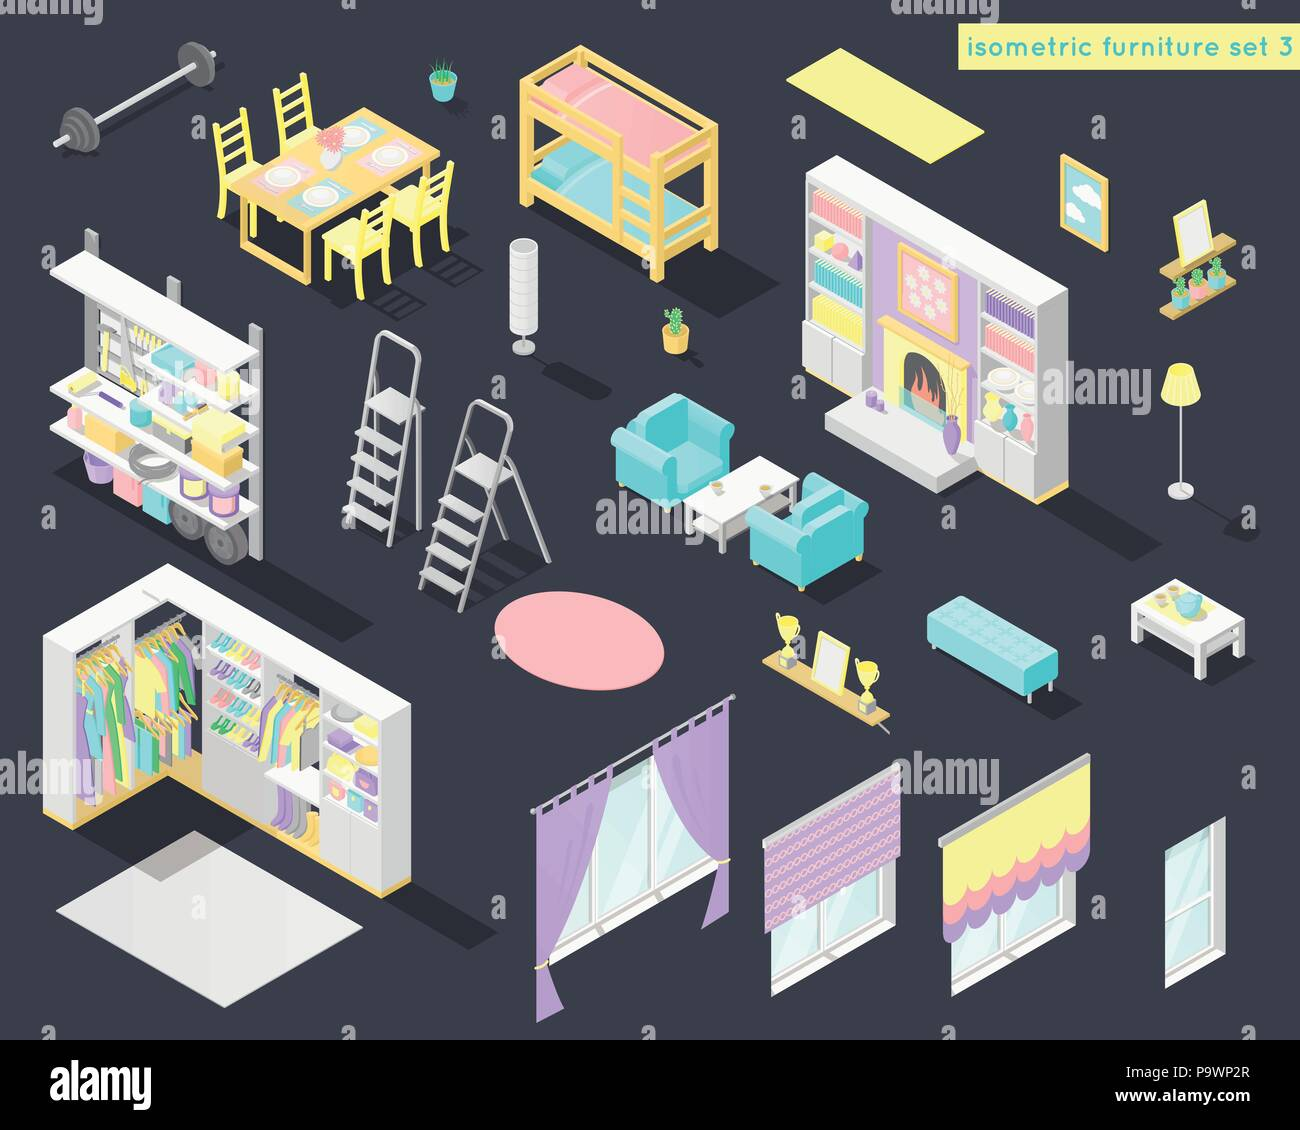 Home Interior Kids Vector Big Set Of Low Poly Isometric Furniture And Decoration For